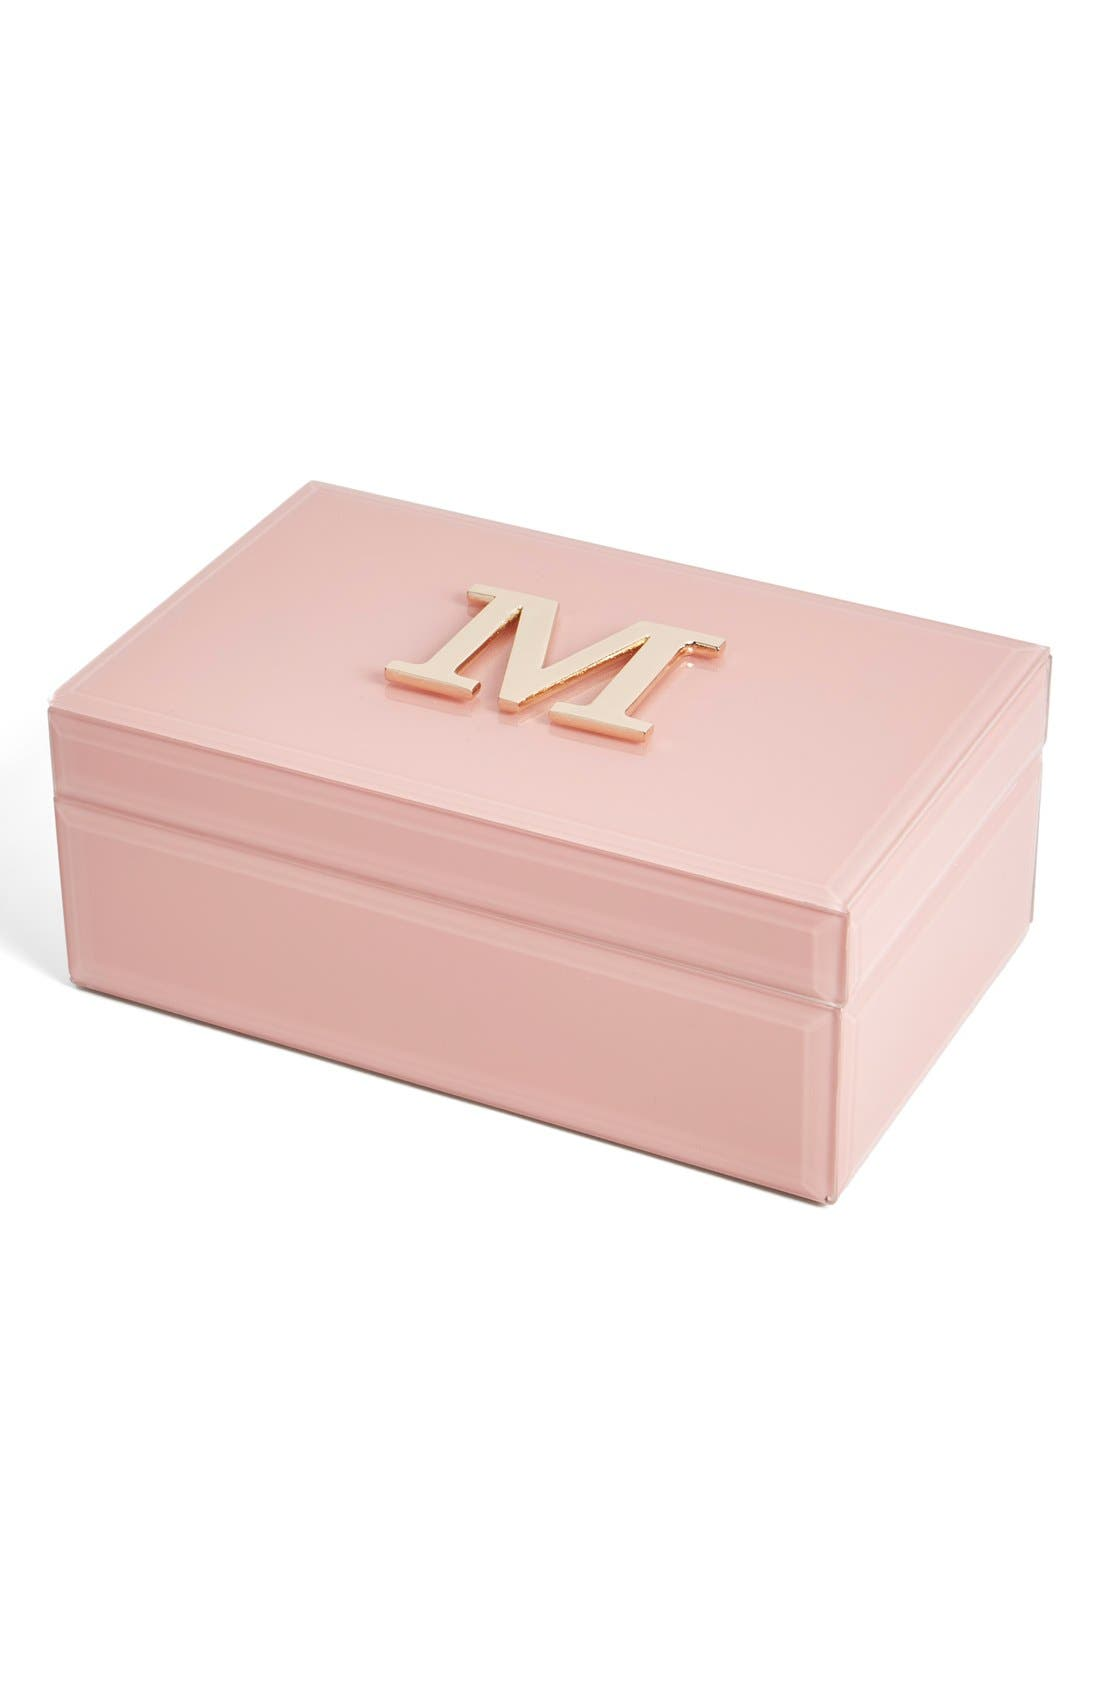 American Atelier Monogram Jewelry Box